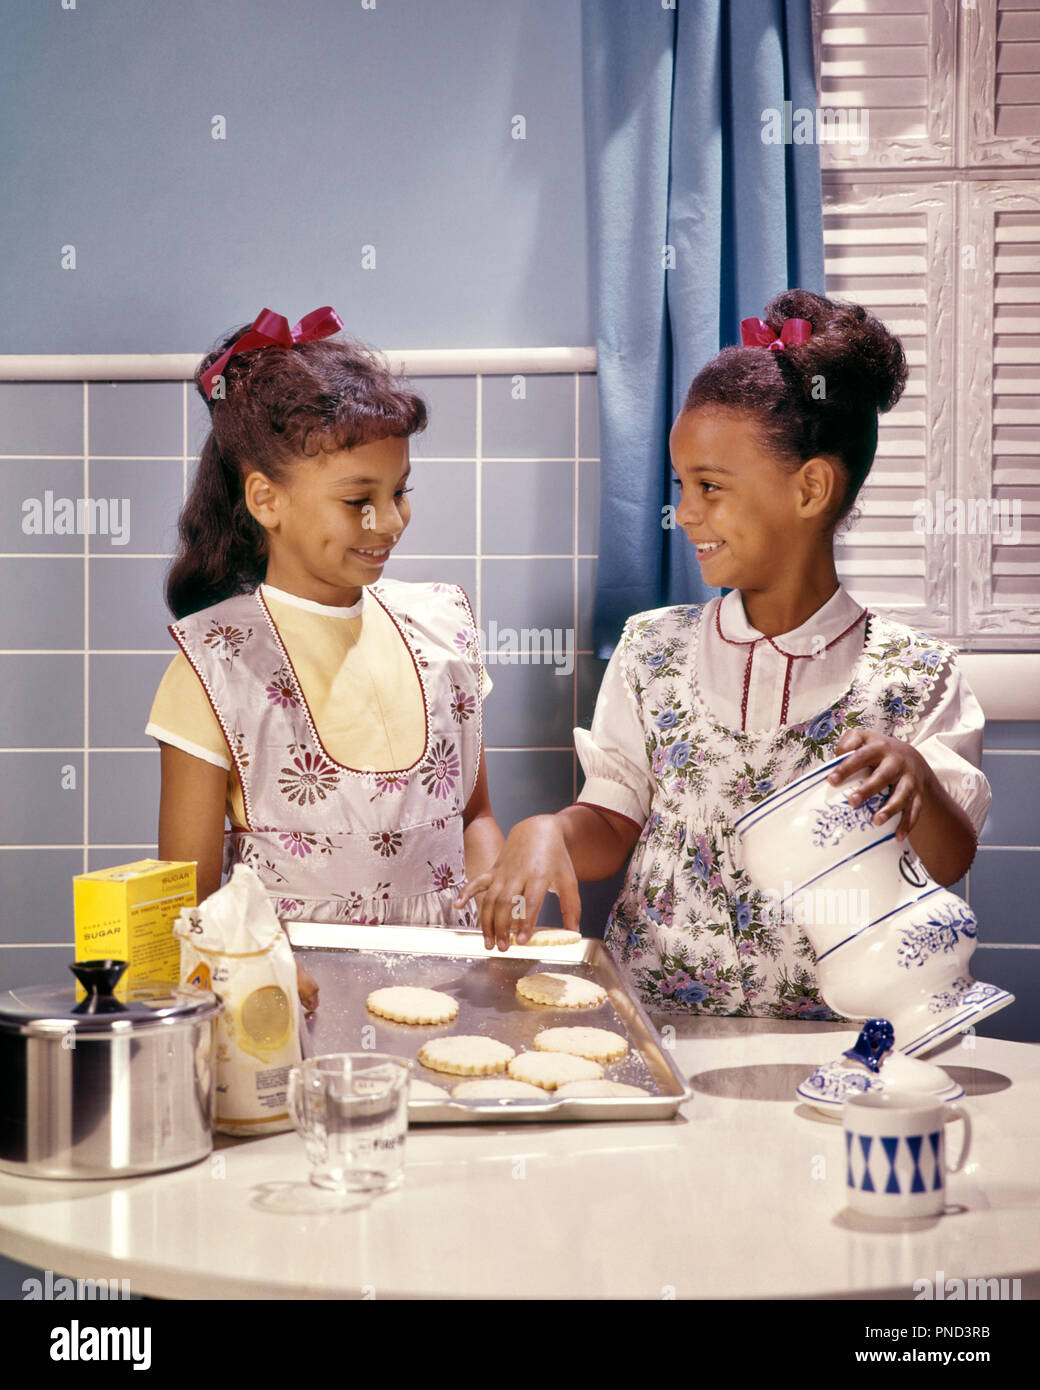 1960s Two Smiling African American Girls Sisters In Kitchen Baking